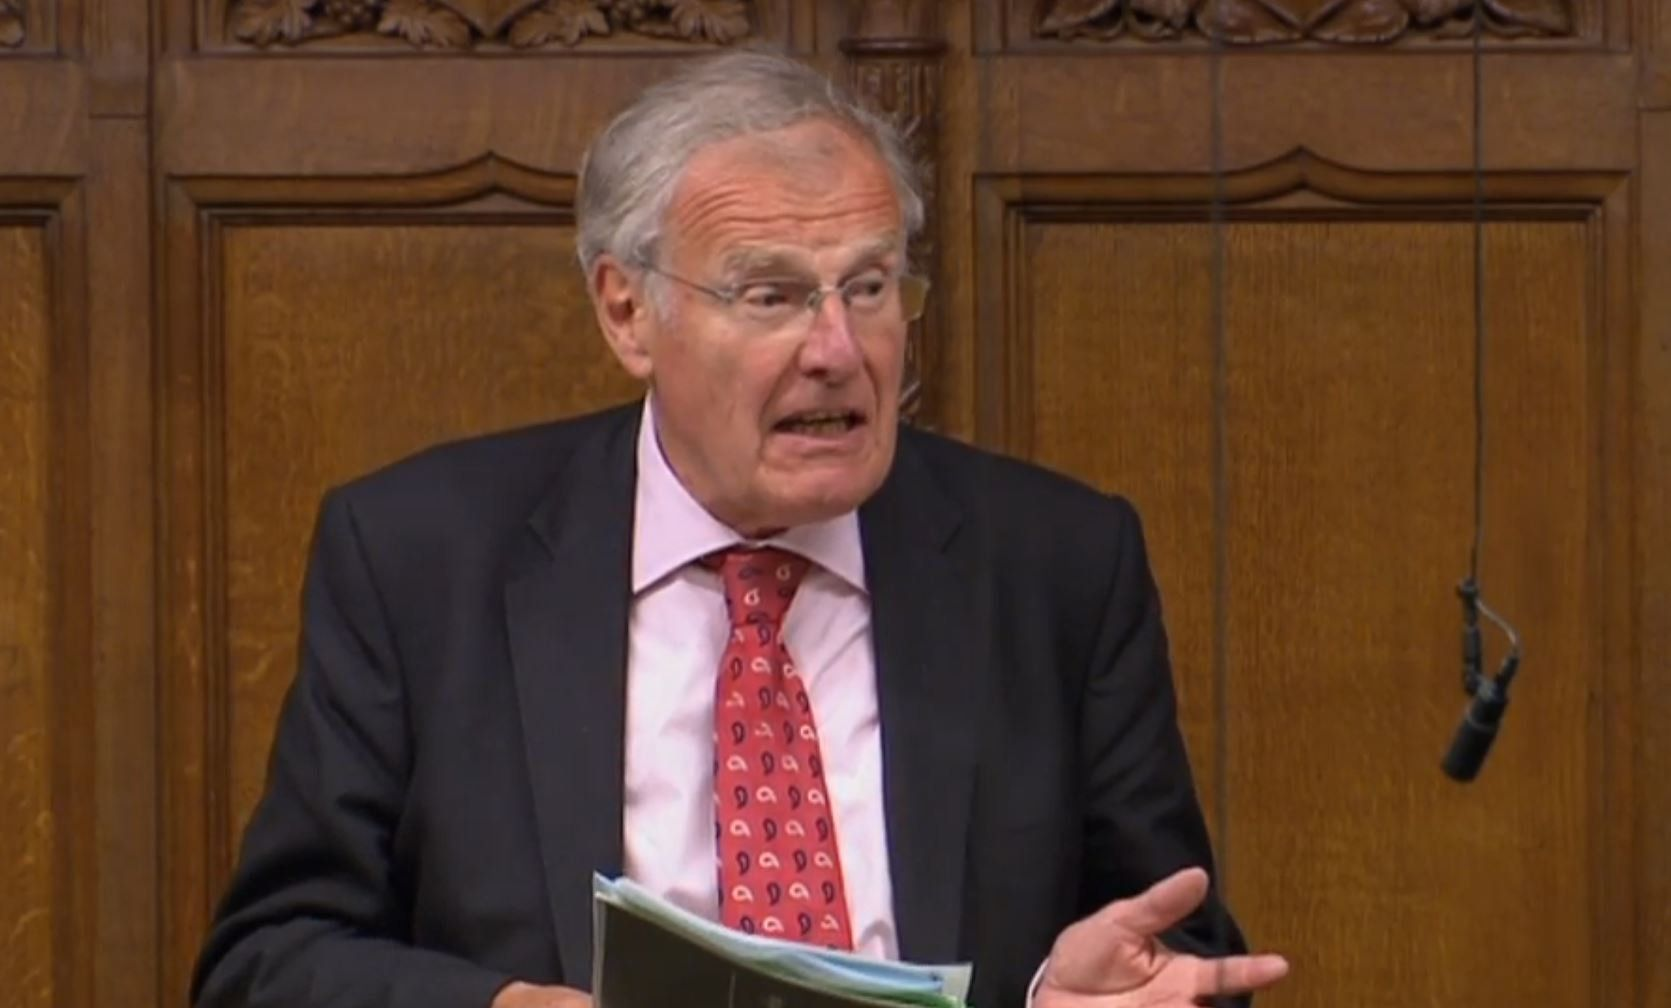 Christopher Chope Blocks FGM Bill By Shouting 'Object' In The House Of Commons